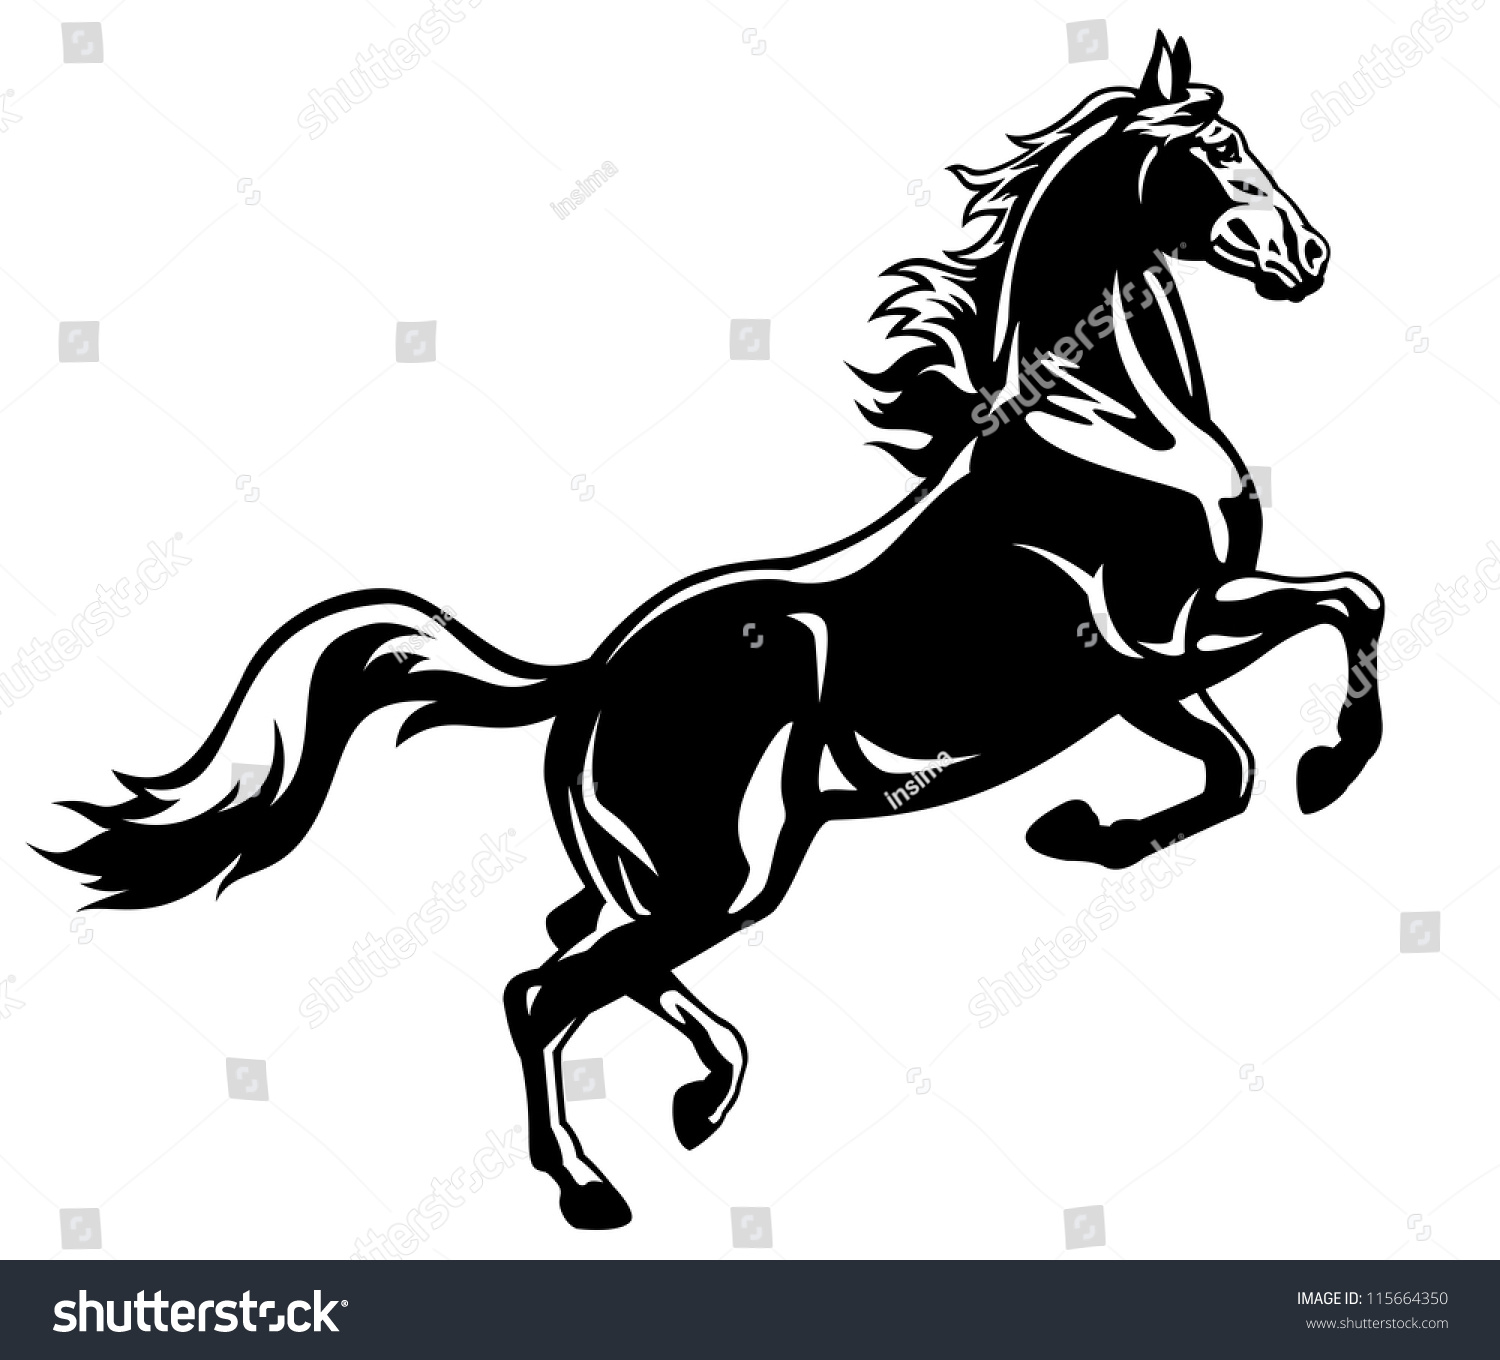 Horse vector clipart download for Clipart mare